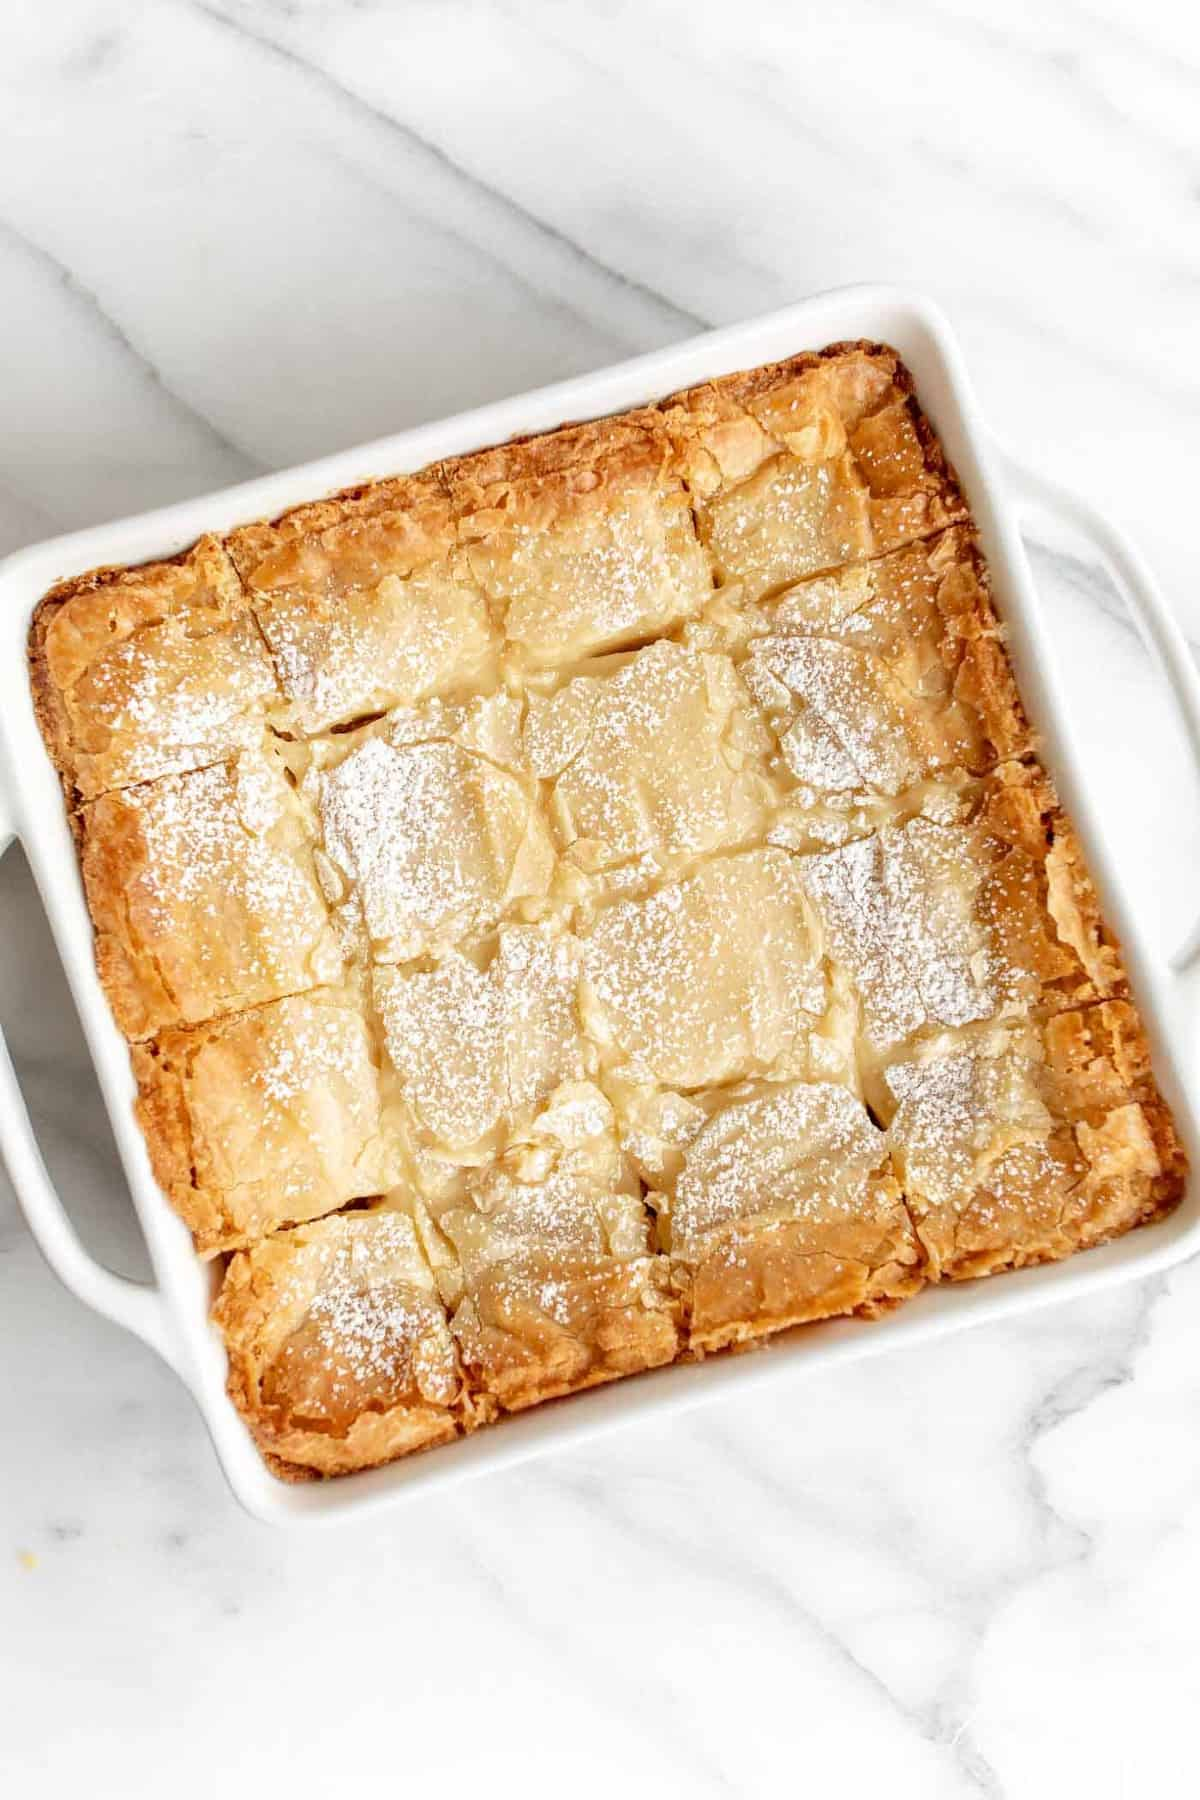 brown butter gooey butter cake garnished with powdered sugar